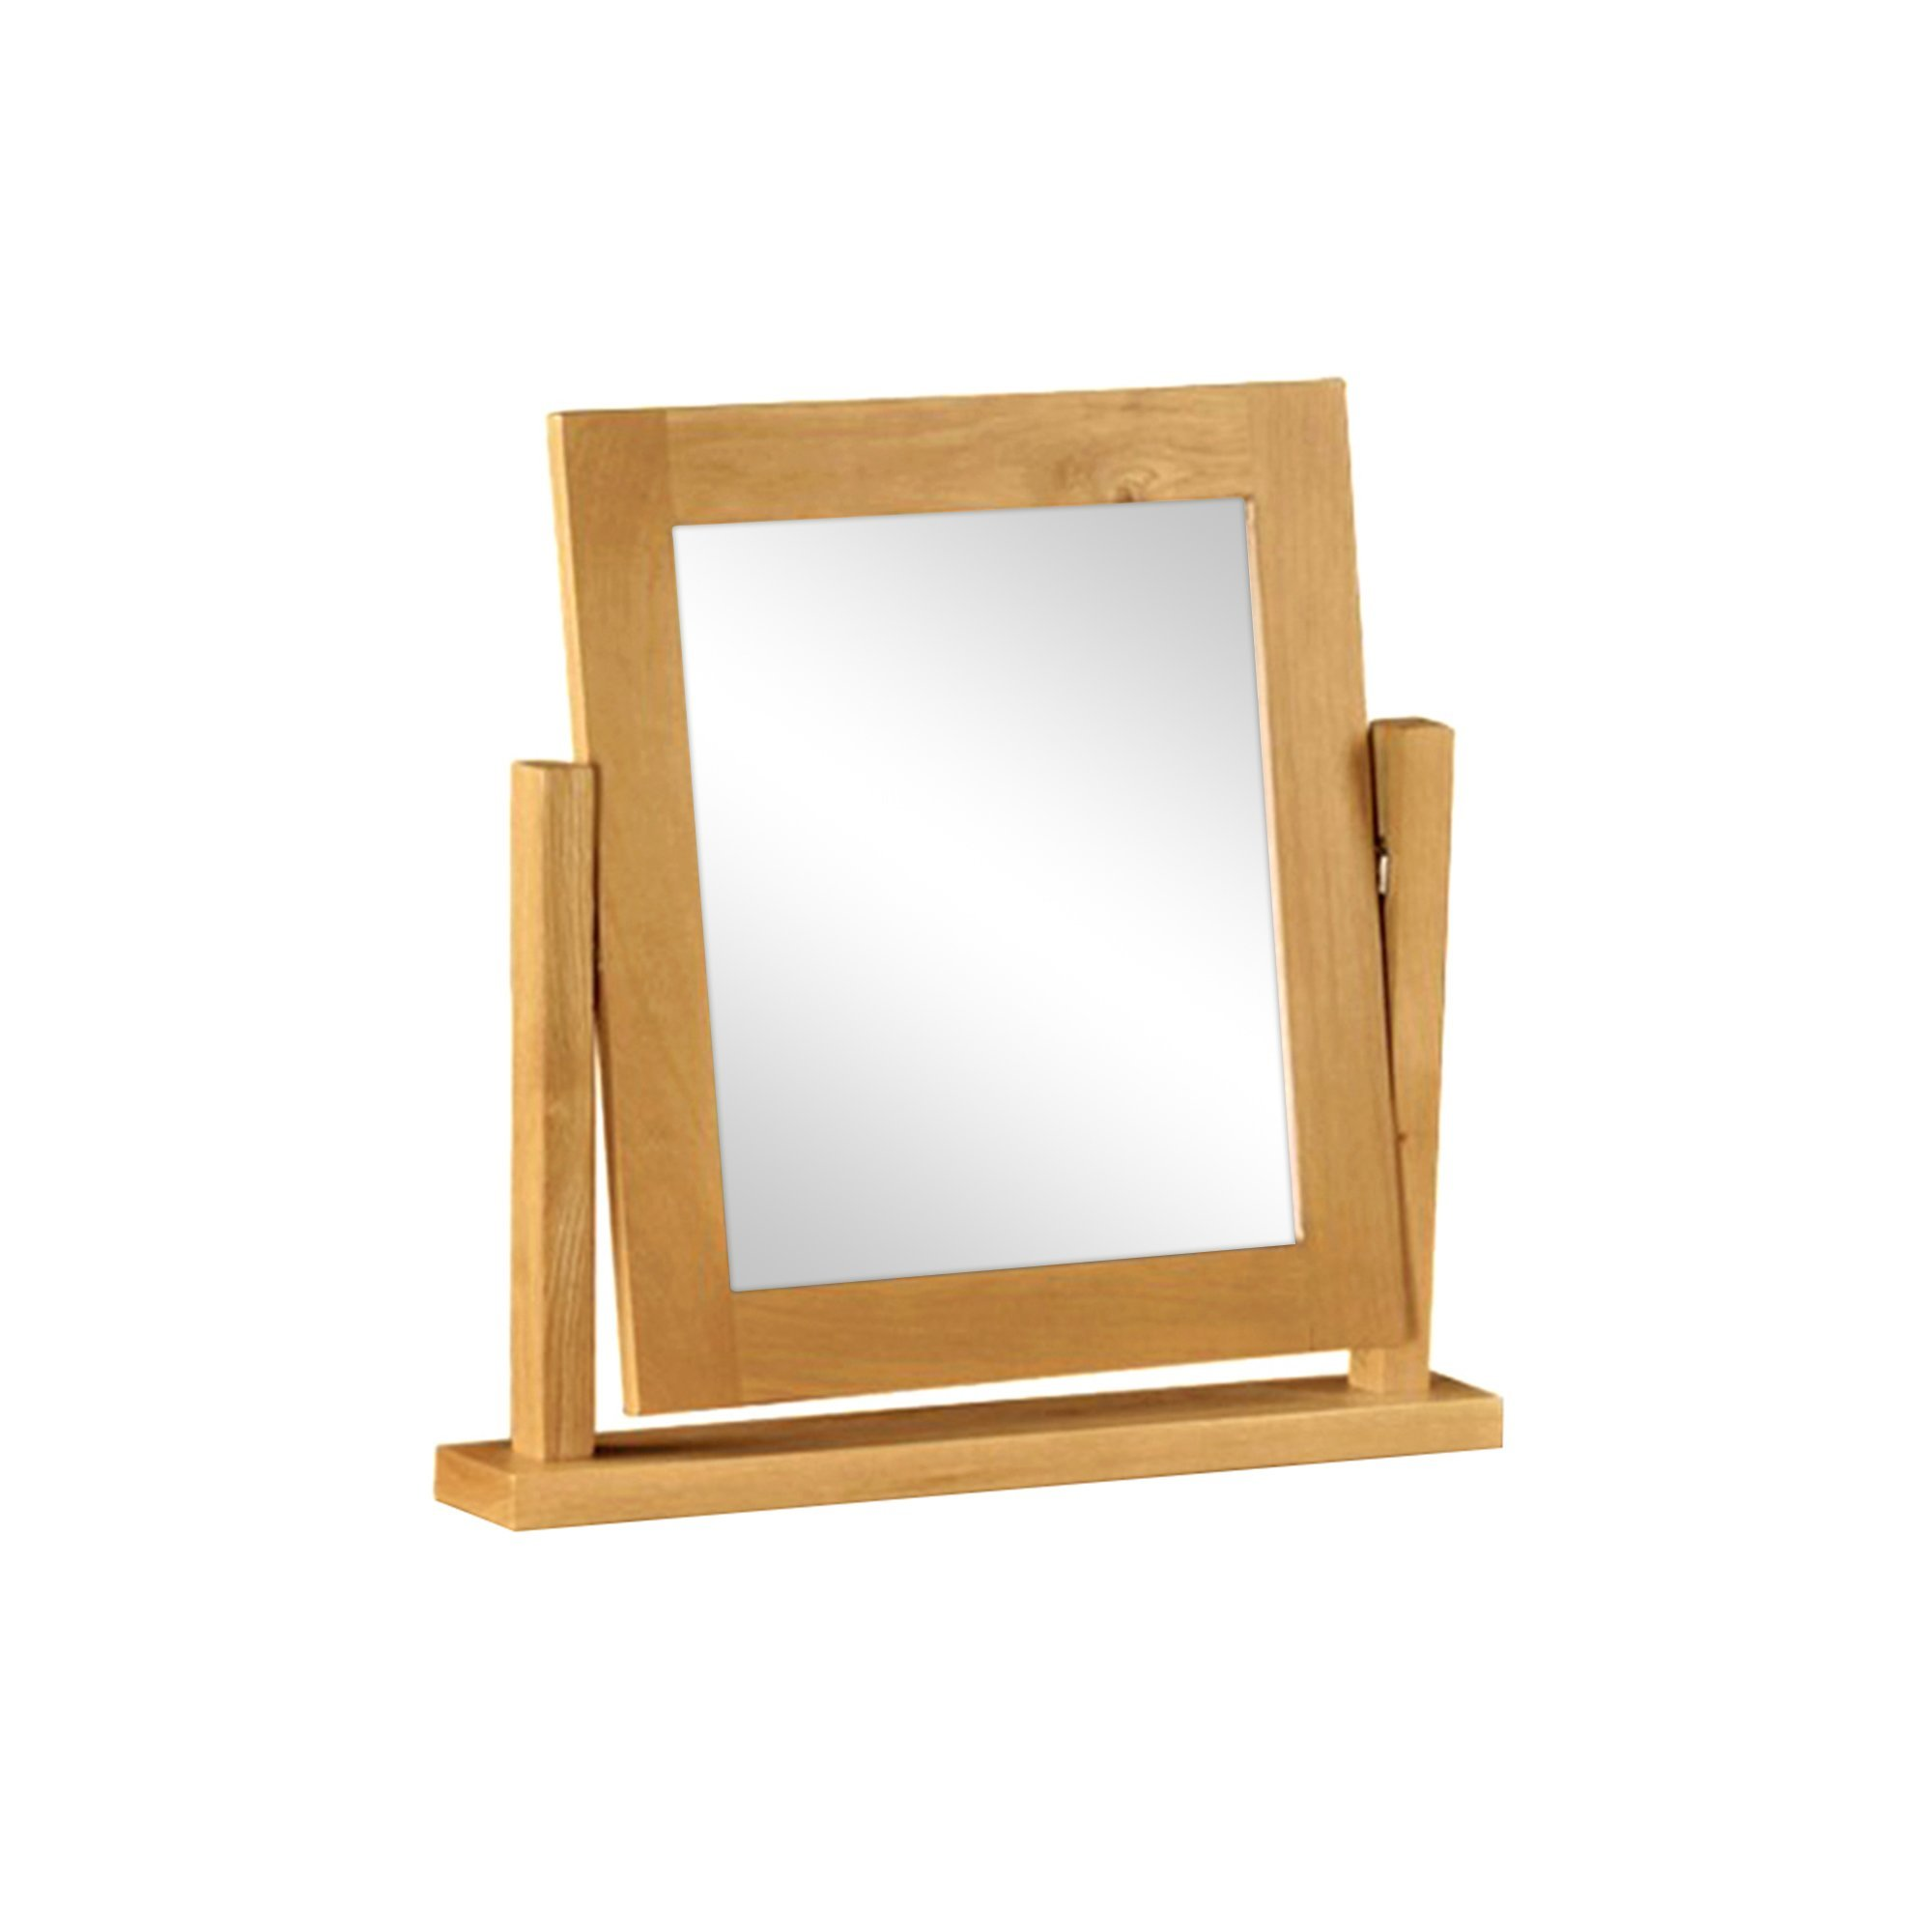 buy cheap swivel mirror compare products prices for best uk deals. Black Bedroom Furniture Sets. Home Design Ideas